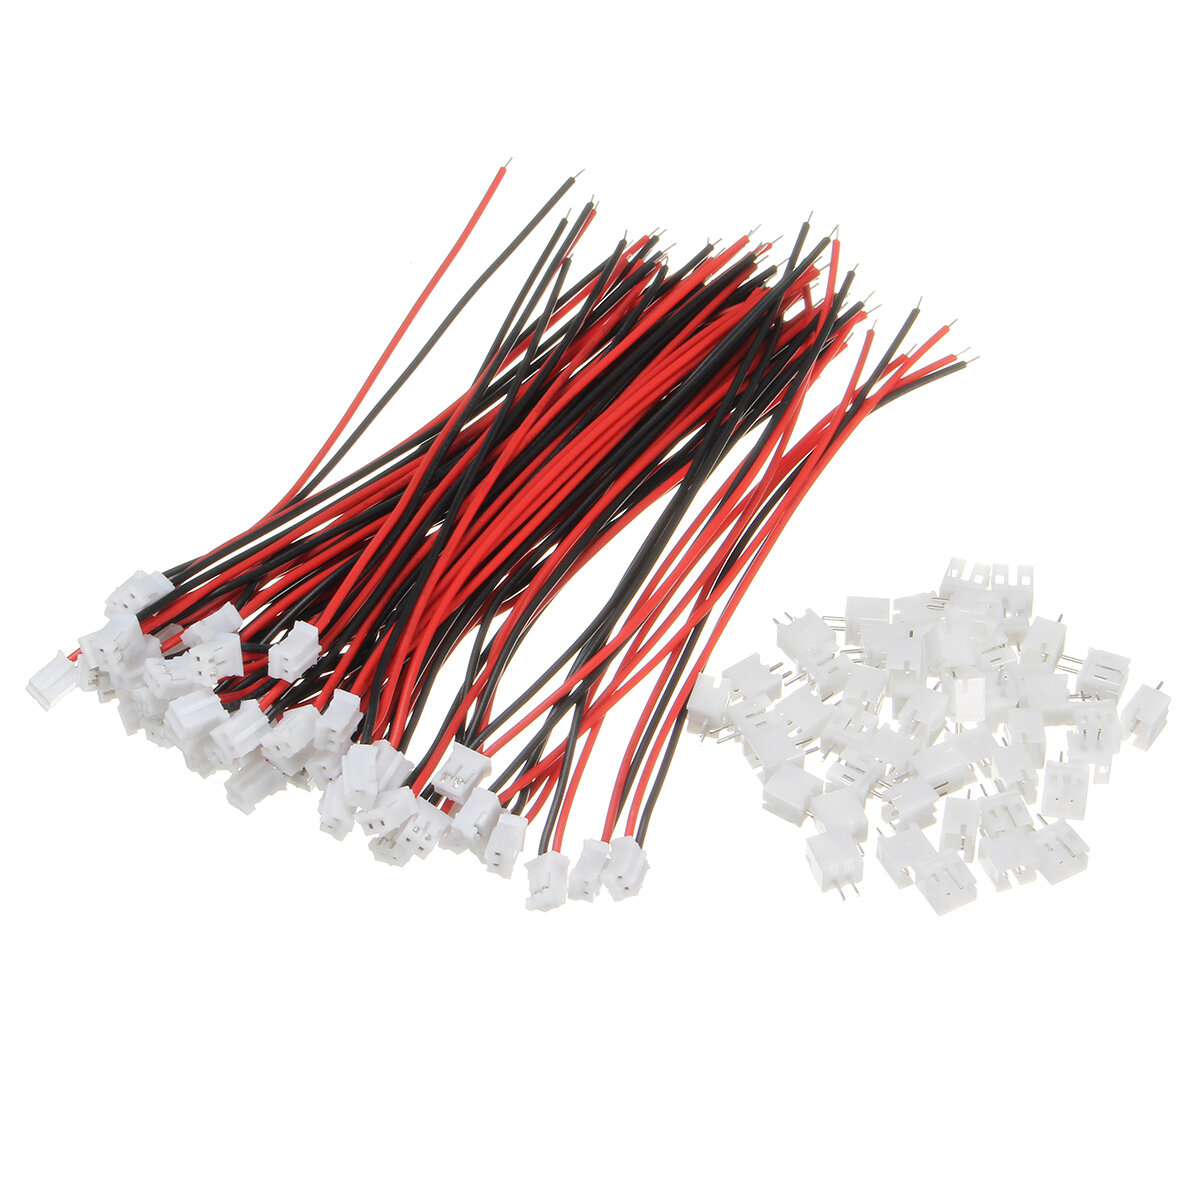 Excellway® 100Pcs Mini Micro JST 2.0 PH 2Pin Connector Plug With 120mm Wires Cables